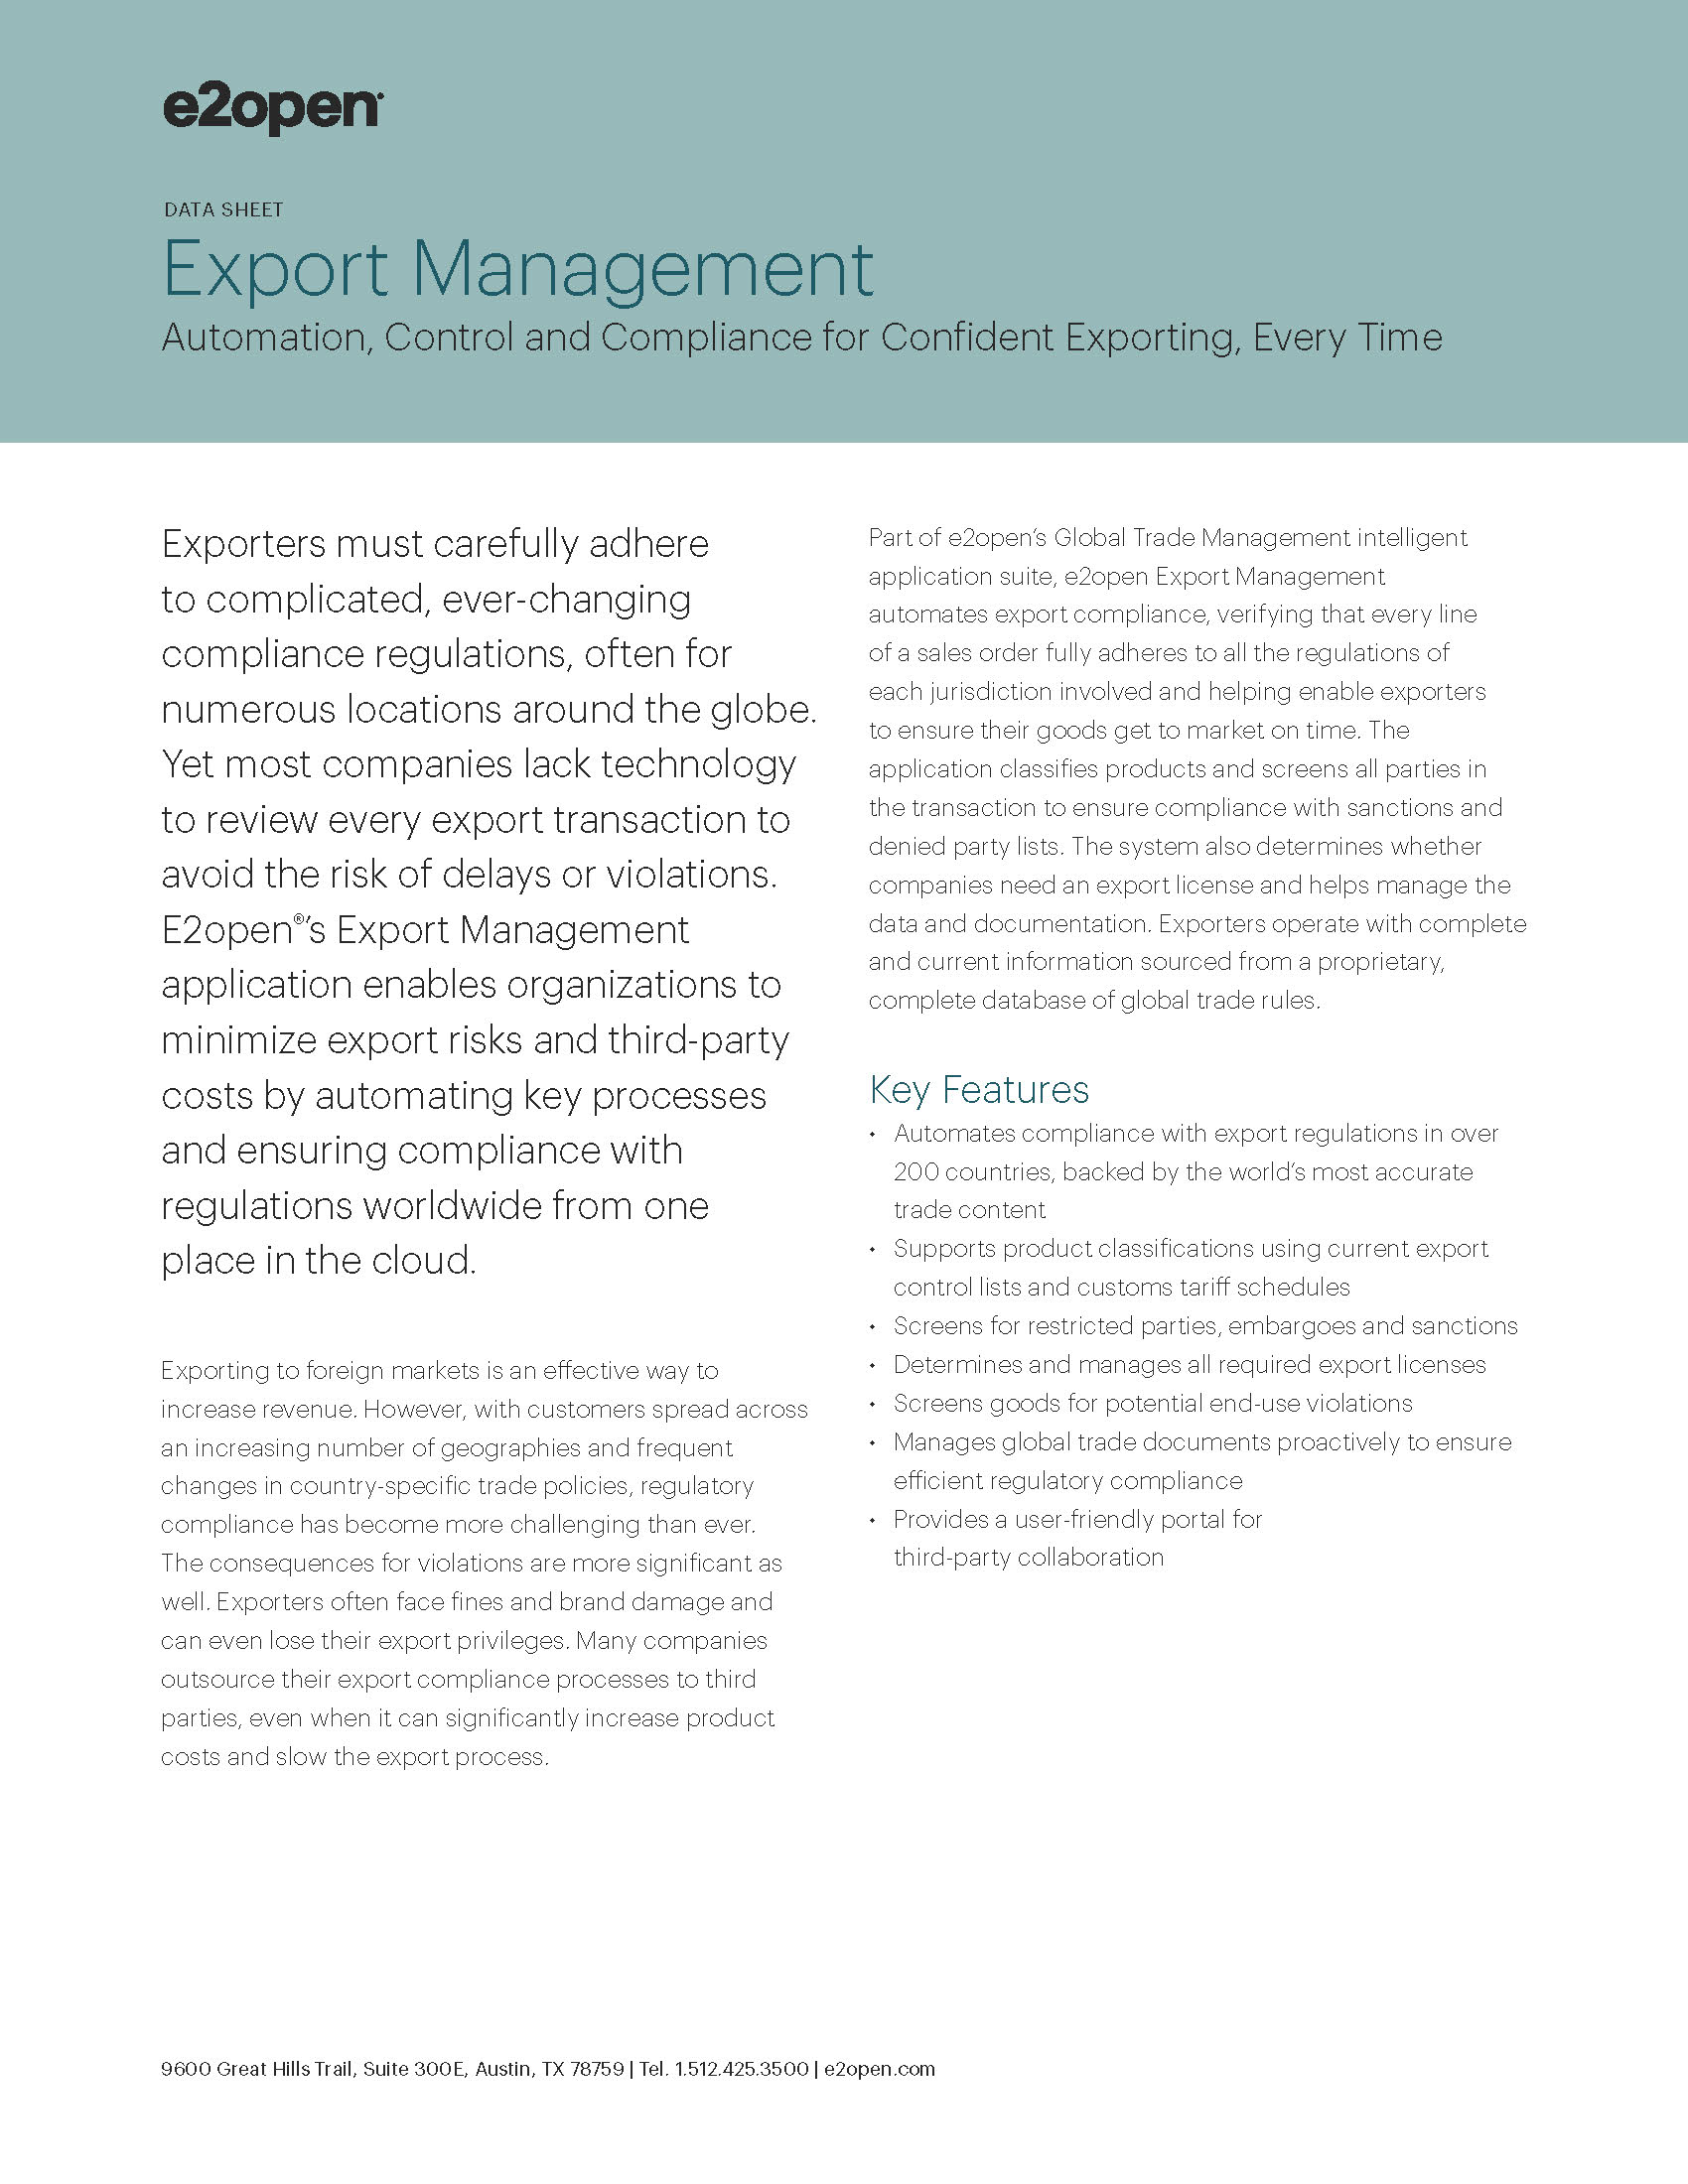 E2open Export Management Data Sheet